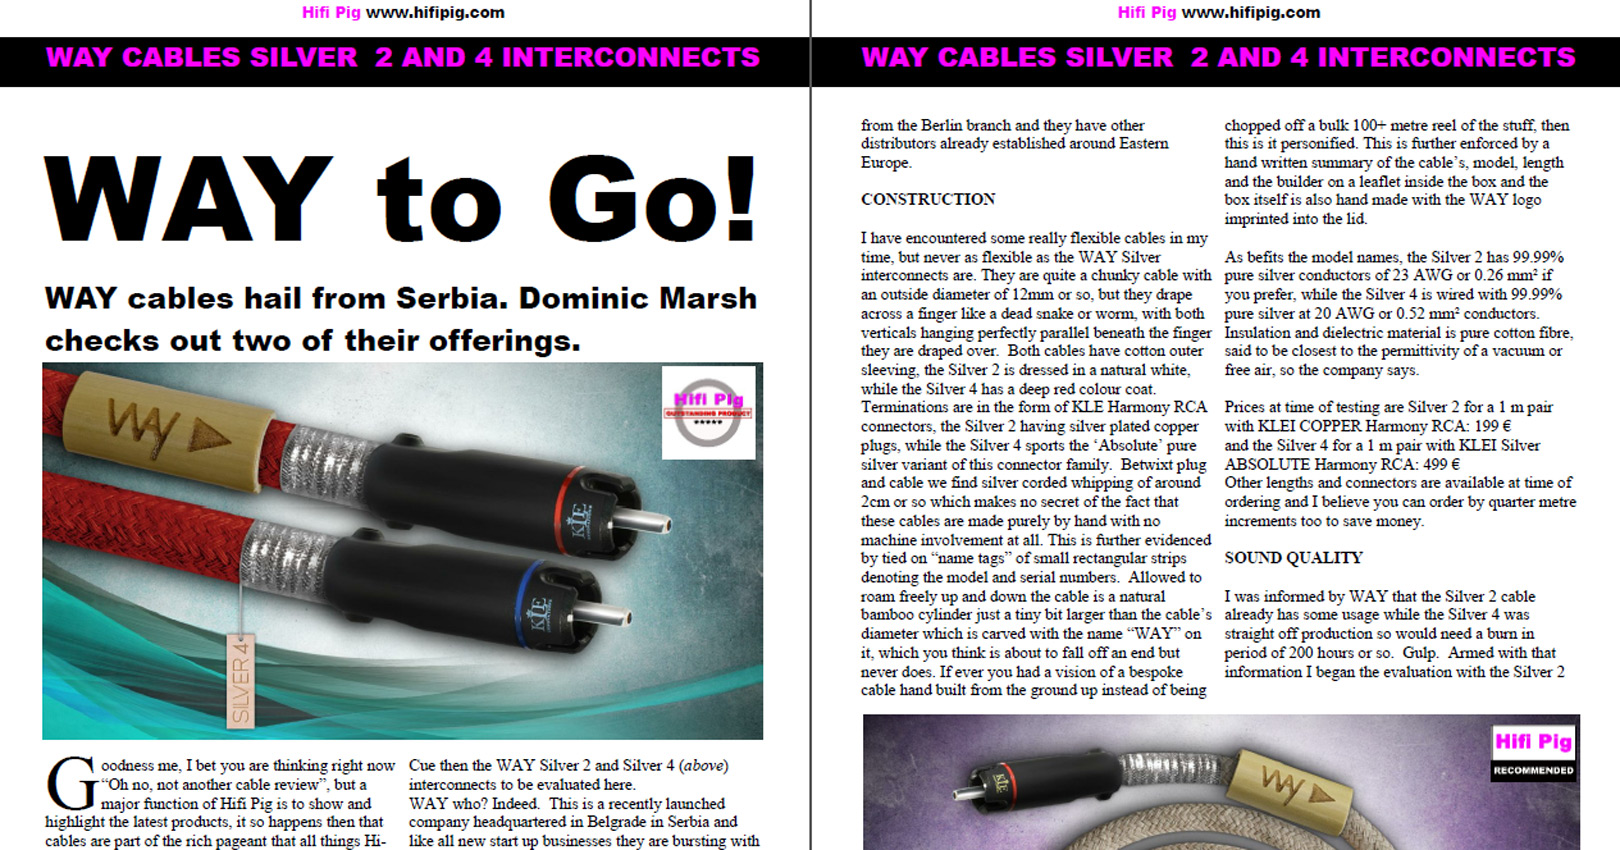 PDF of Way Cables interconnects awards by-Hi Fi Pig EXTRA Magazine, Sept. 2015